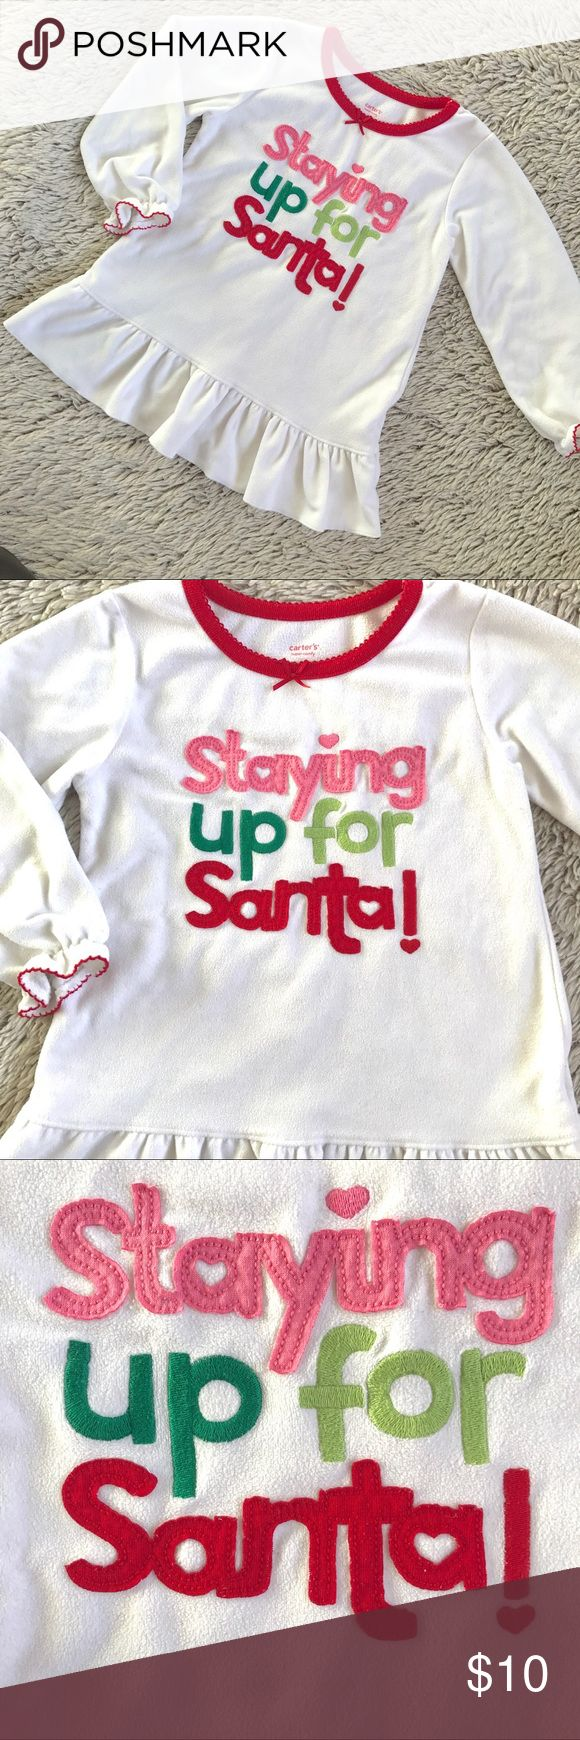 Staying Up for Santa Nightgown🎄 Cute Staying Up For Santa nightgown by Carter's▪️Warm fleece material▪️Size 3T▪️In very good condition▪️Perfect for the Holidays🎄🎄 Carter's Pajamas Nightgowns